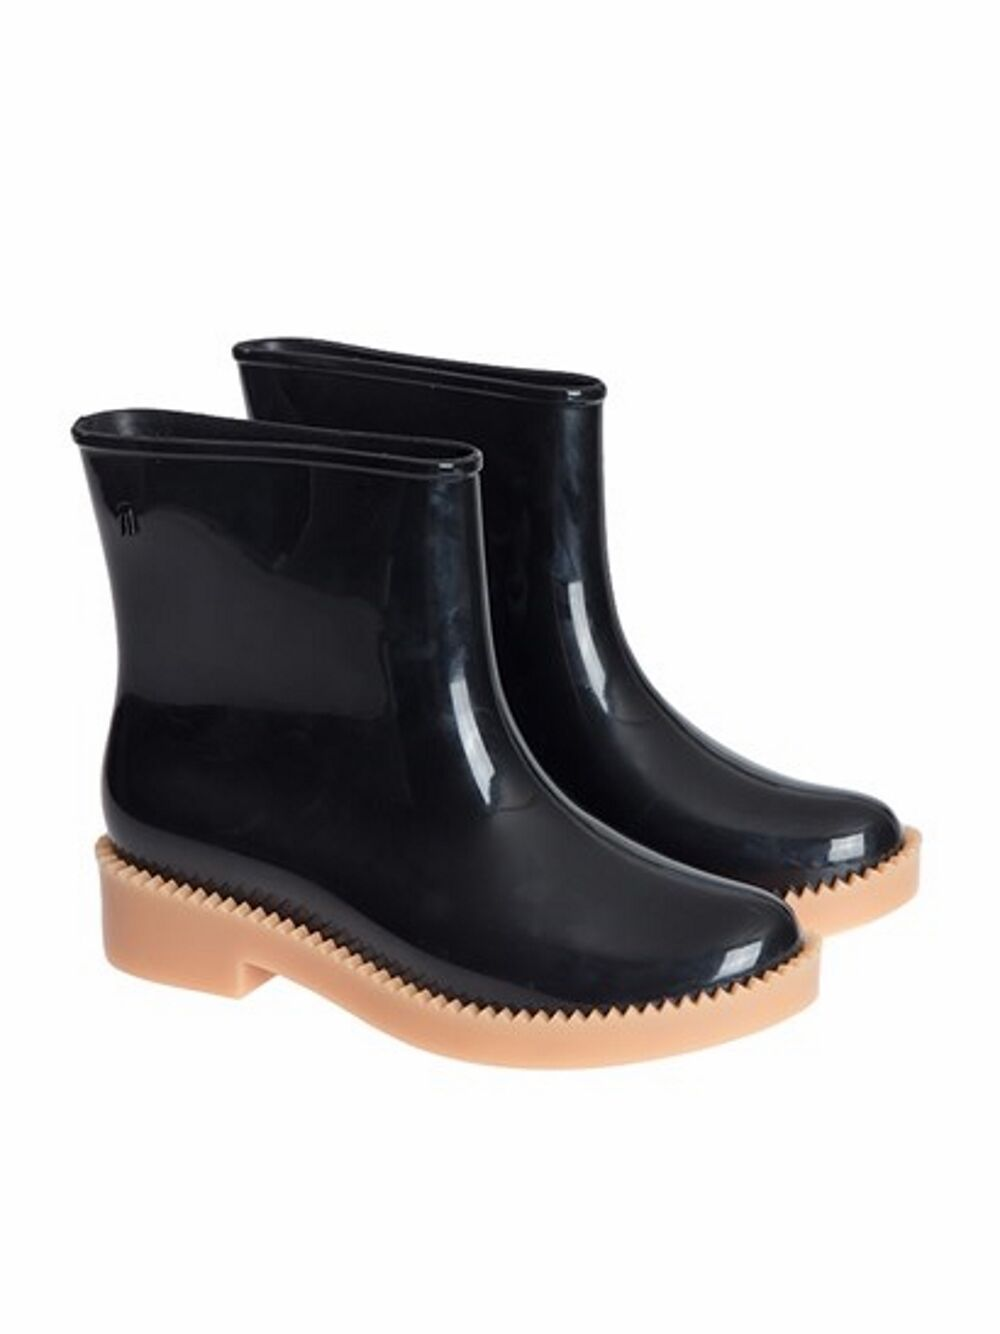 Grandes zapatos con descuento Melissa Stivaletto da pioggia, Rain drop boot